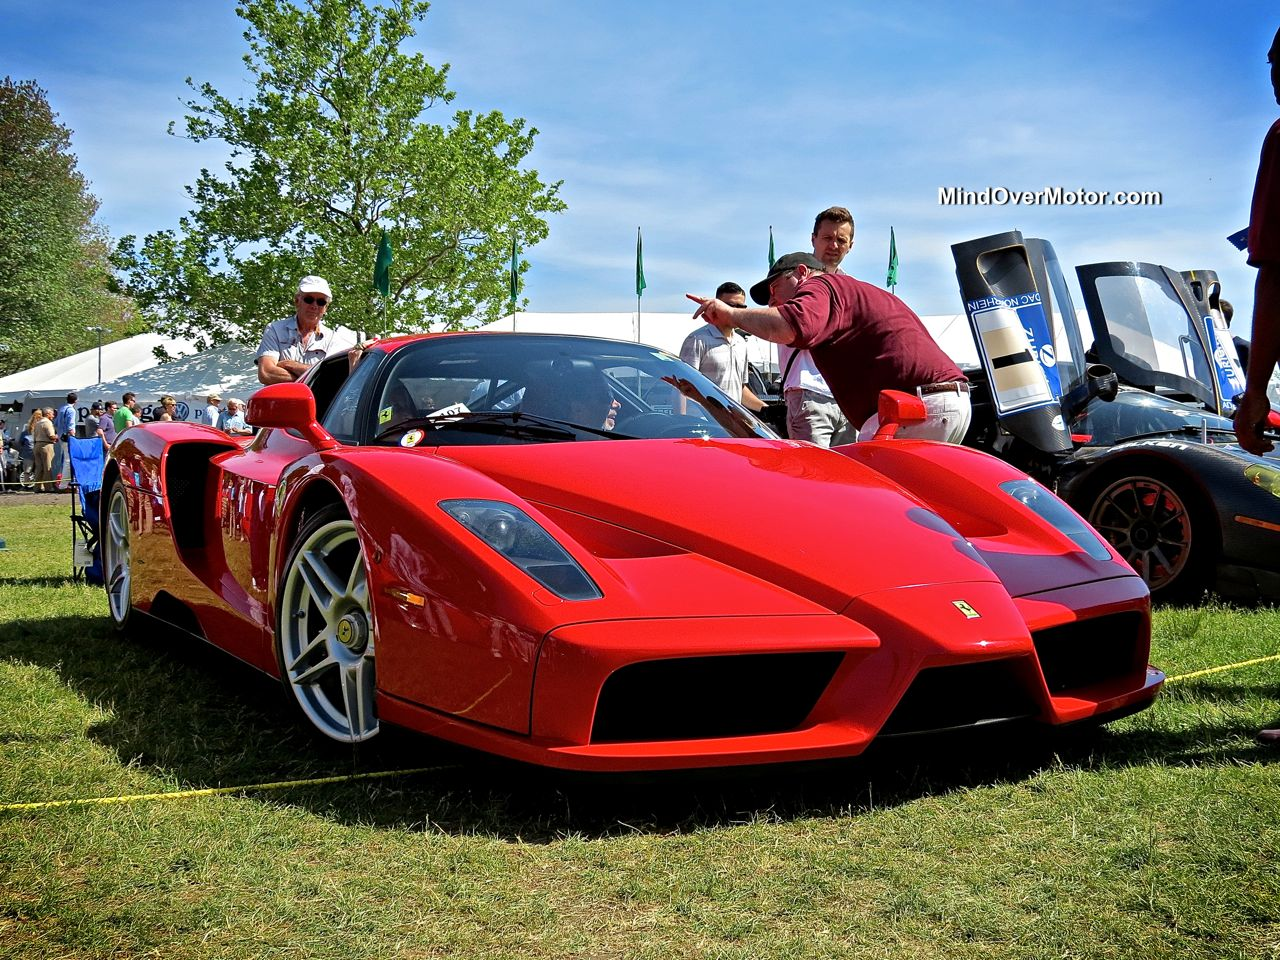 Ferrari Enzo at the Greenwich Concours d'Elegance